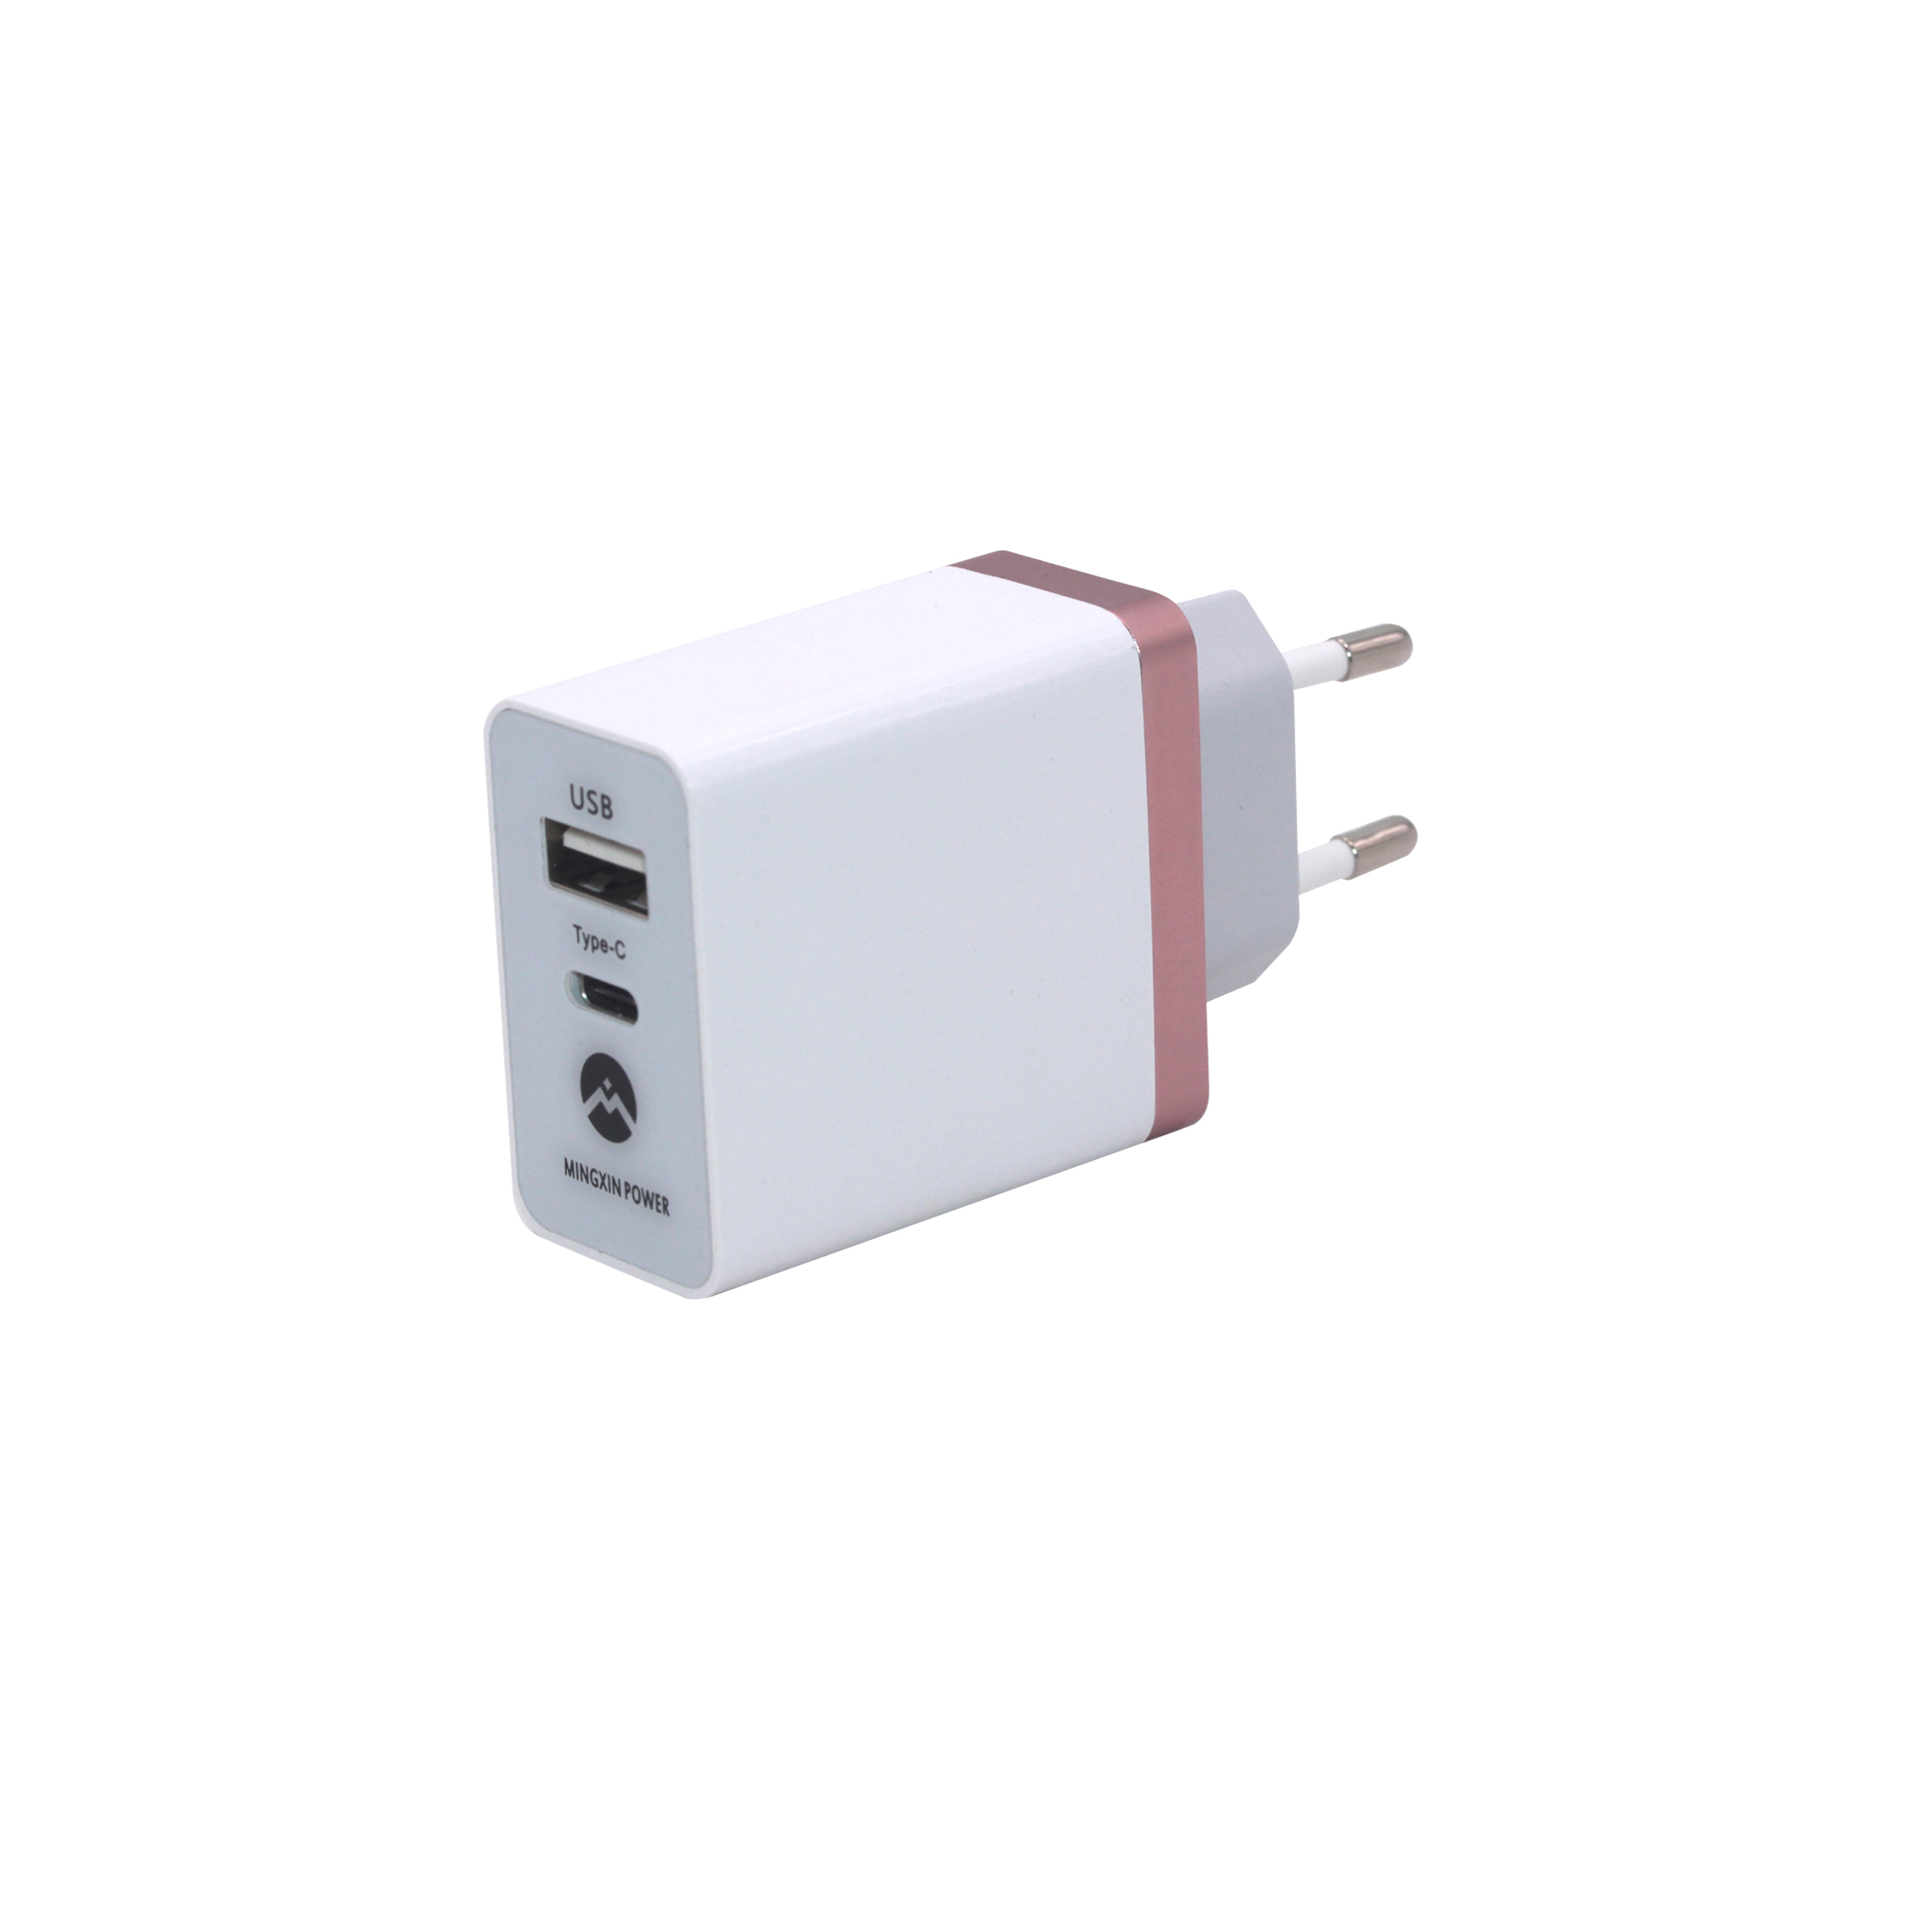 30w type-c PD charger with EU plug